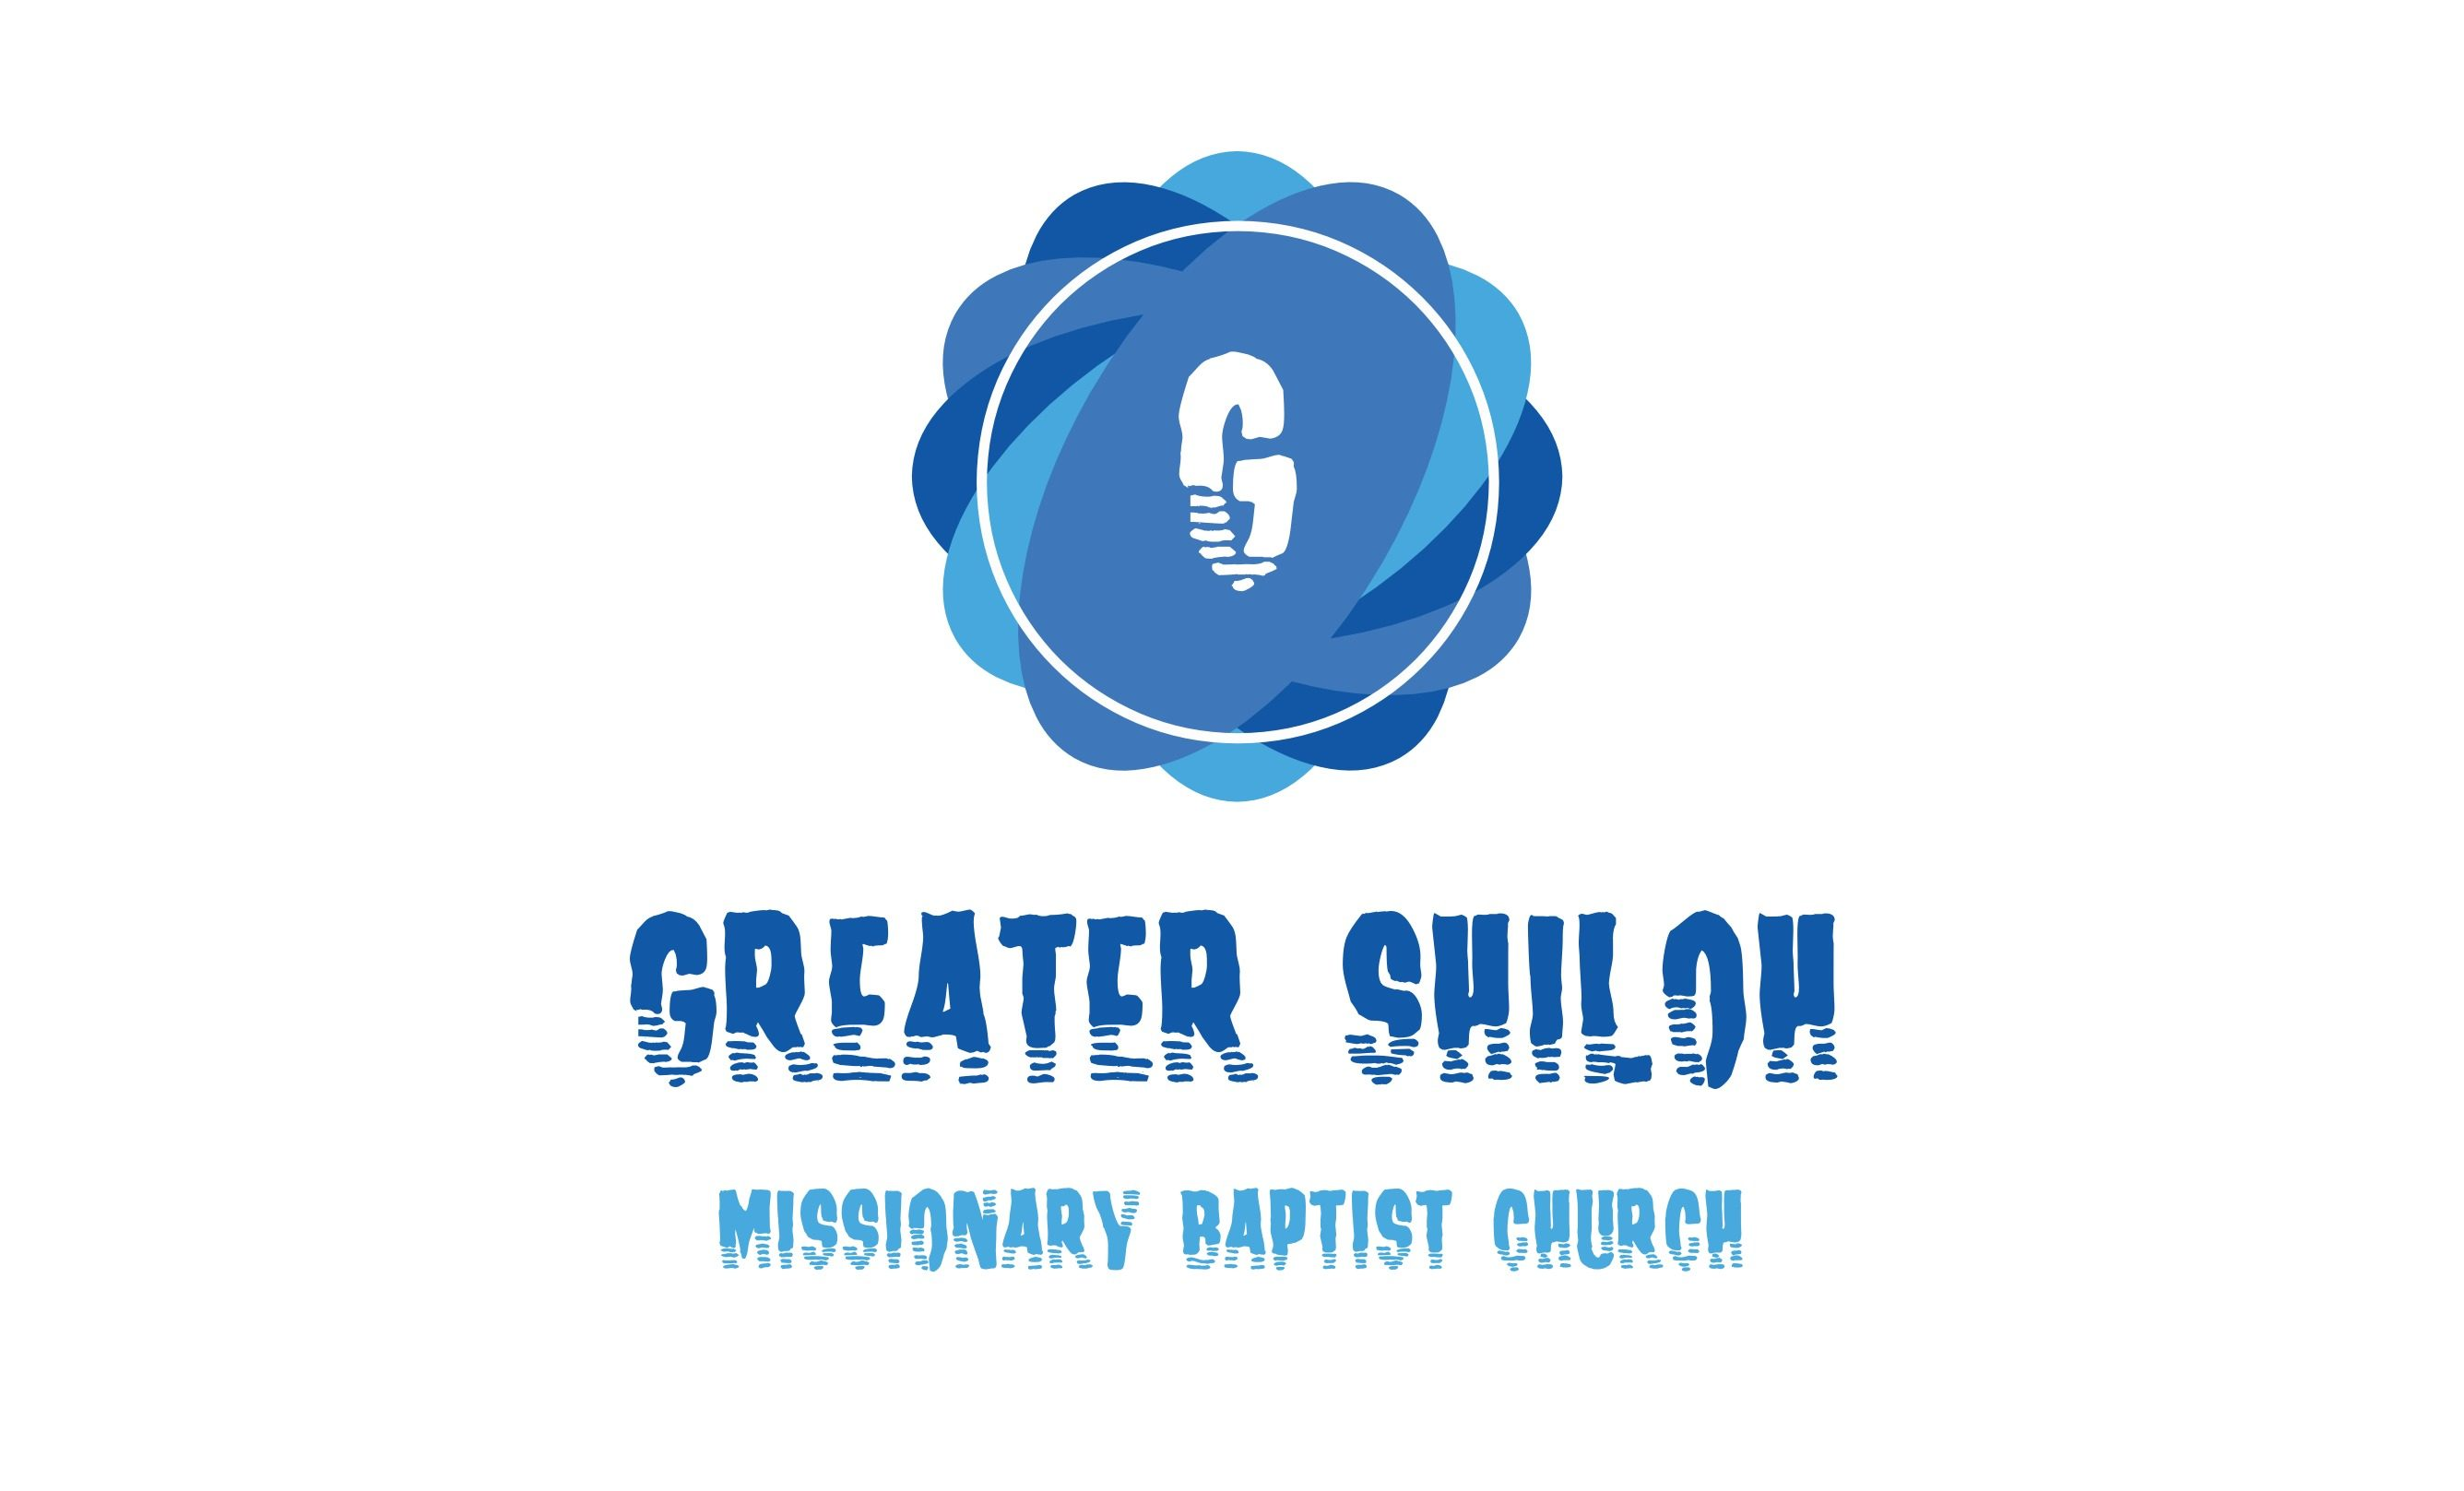 Greater Shiloh Missionary Baptist Church